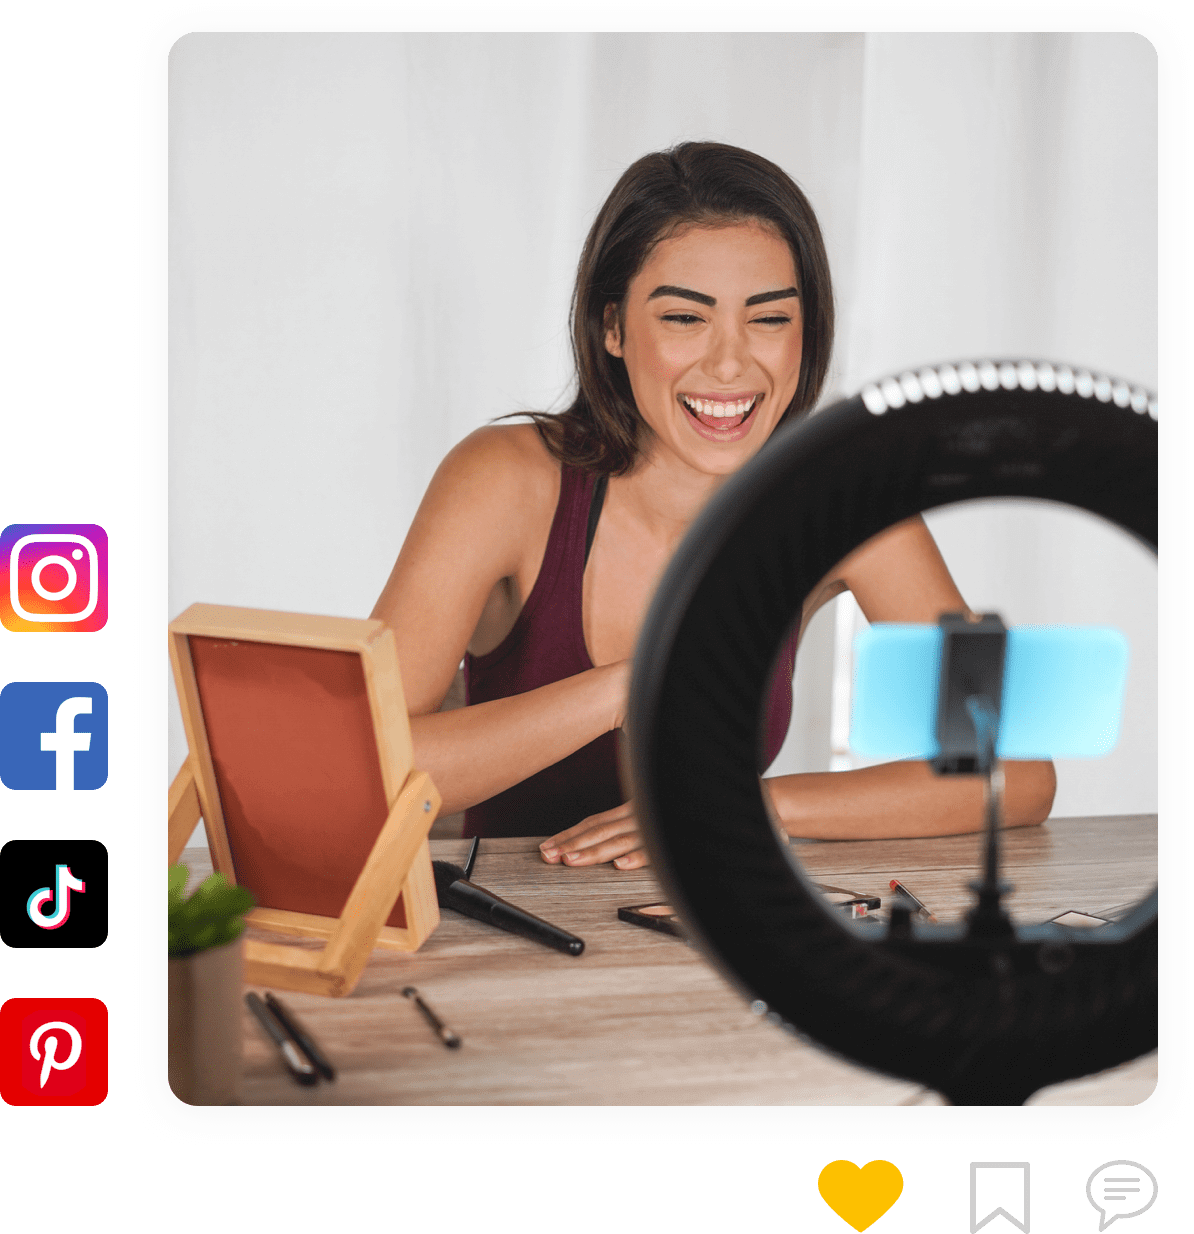 contratar influencer colombia